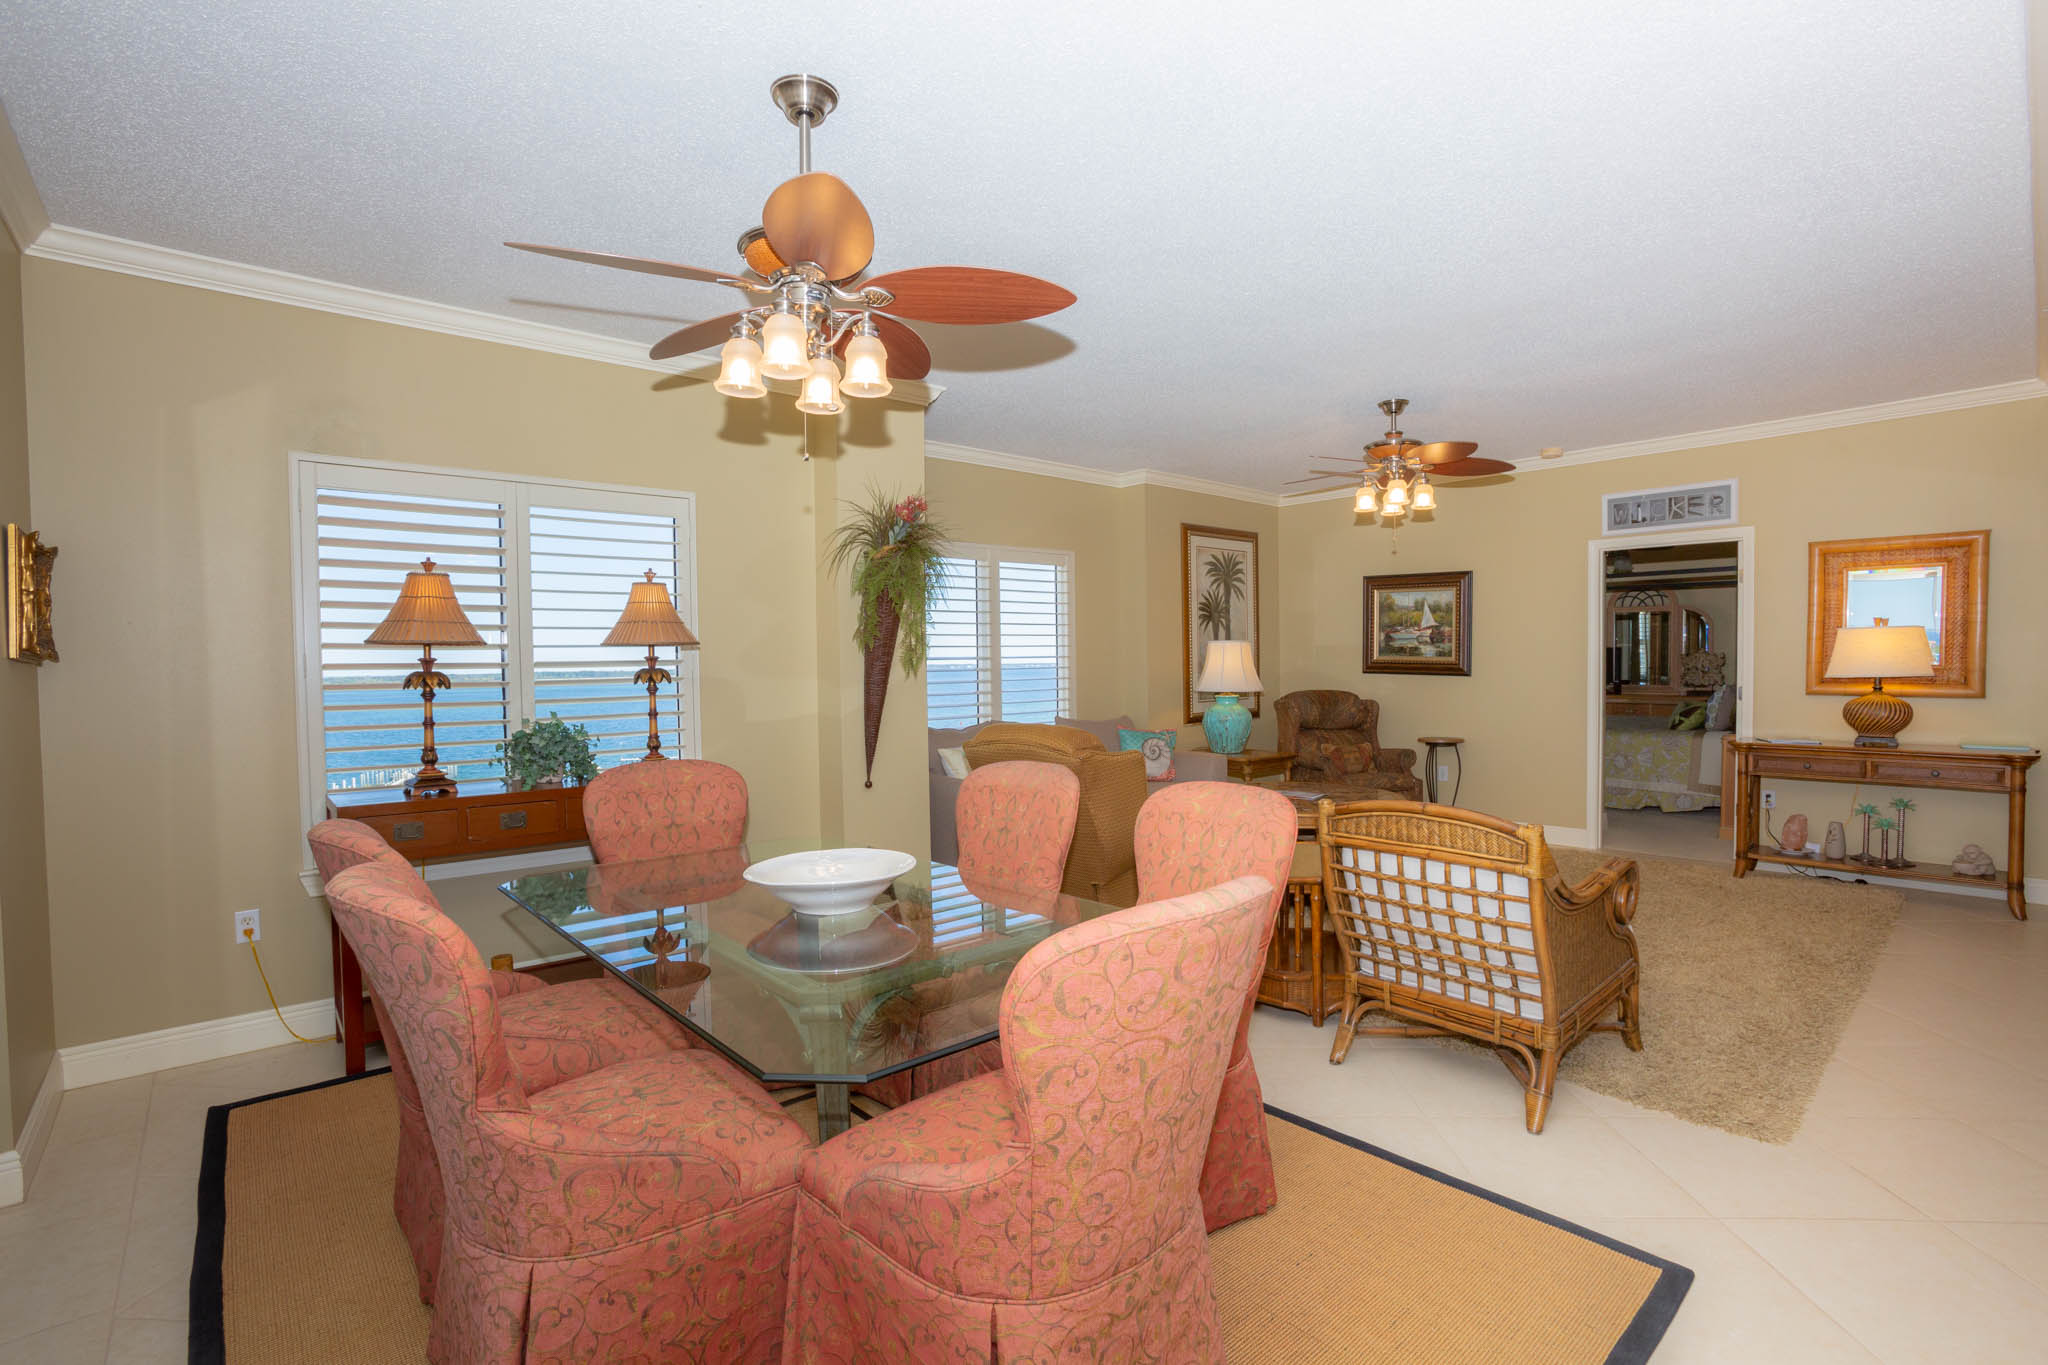 South Harbour #9F Condo rental in South Harbour ~ Pensacola Beach Vacation Rentals by BeachGuide in Pensacola Beach Florida - #15